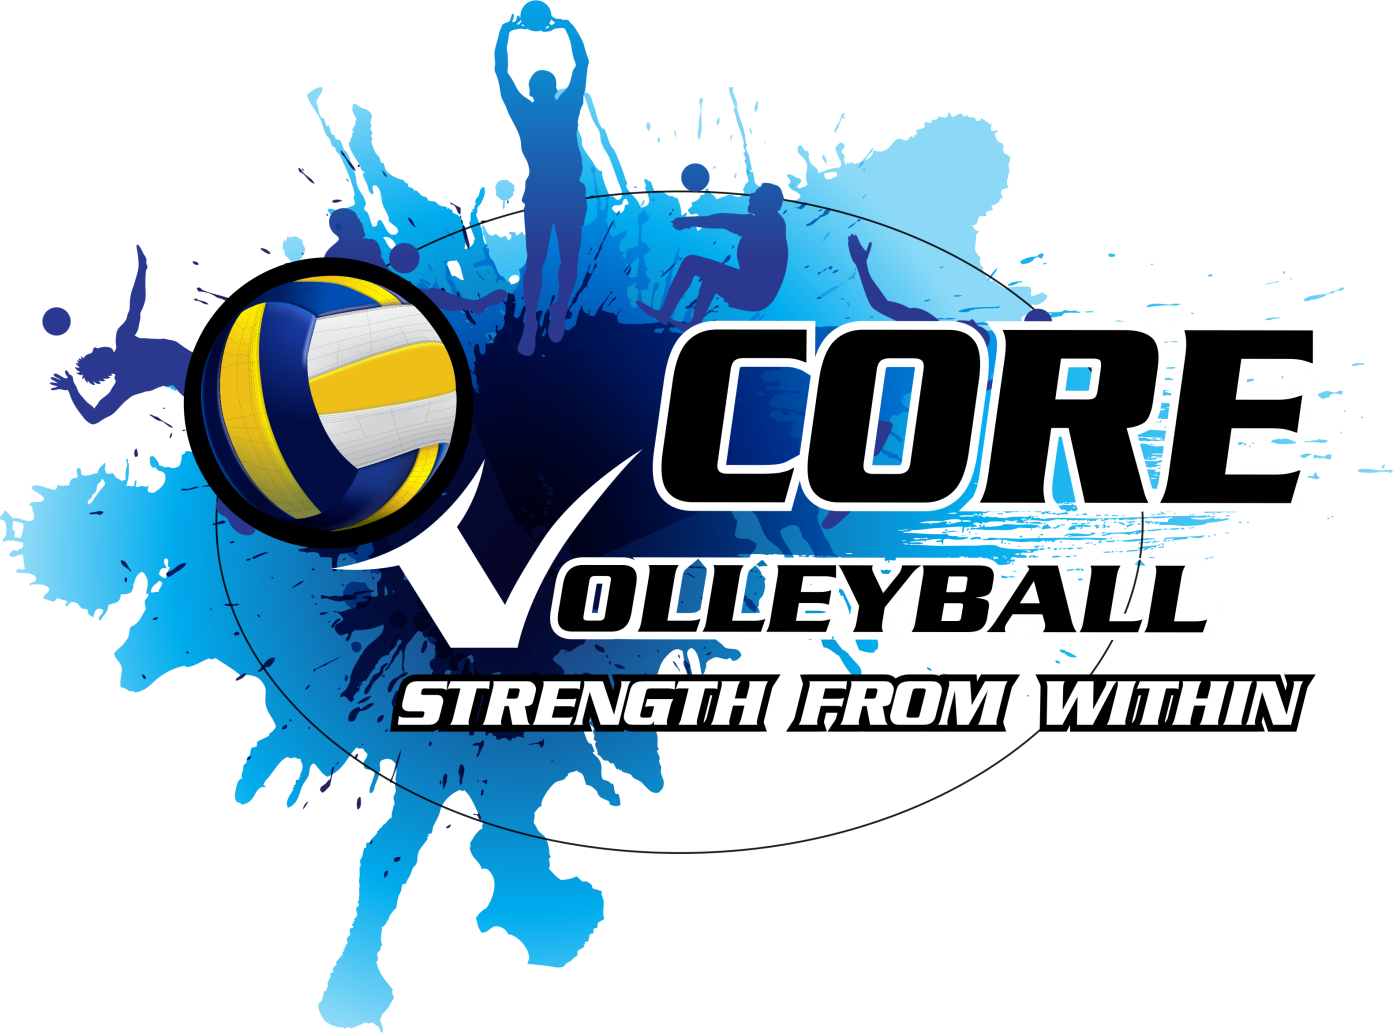 CORE-VA Volleyball Club